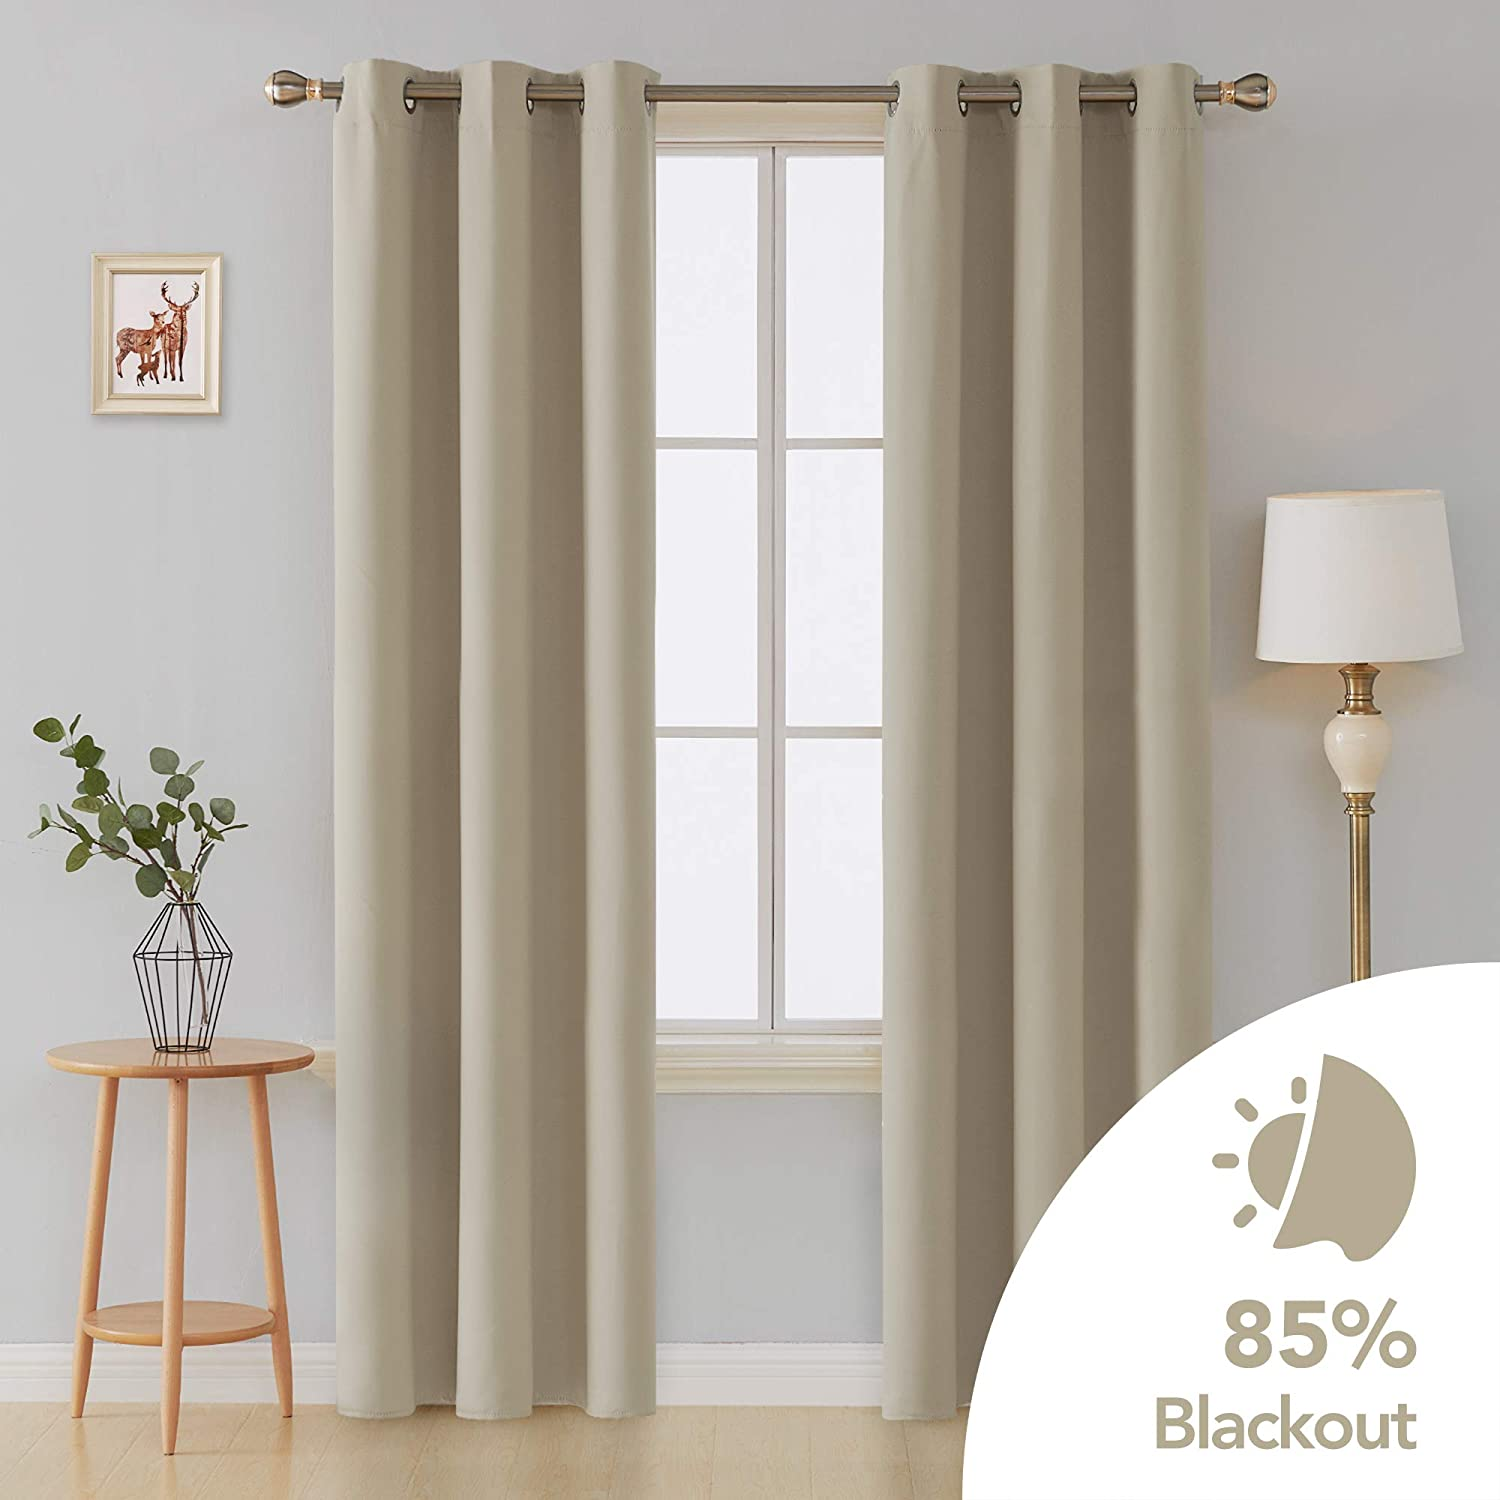 Amazon coupon code for Thermal Insulated Curtains Room Darkening